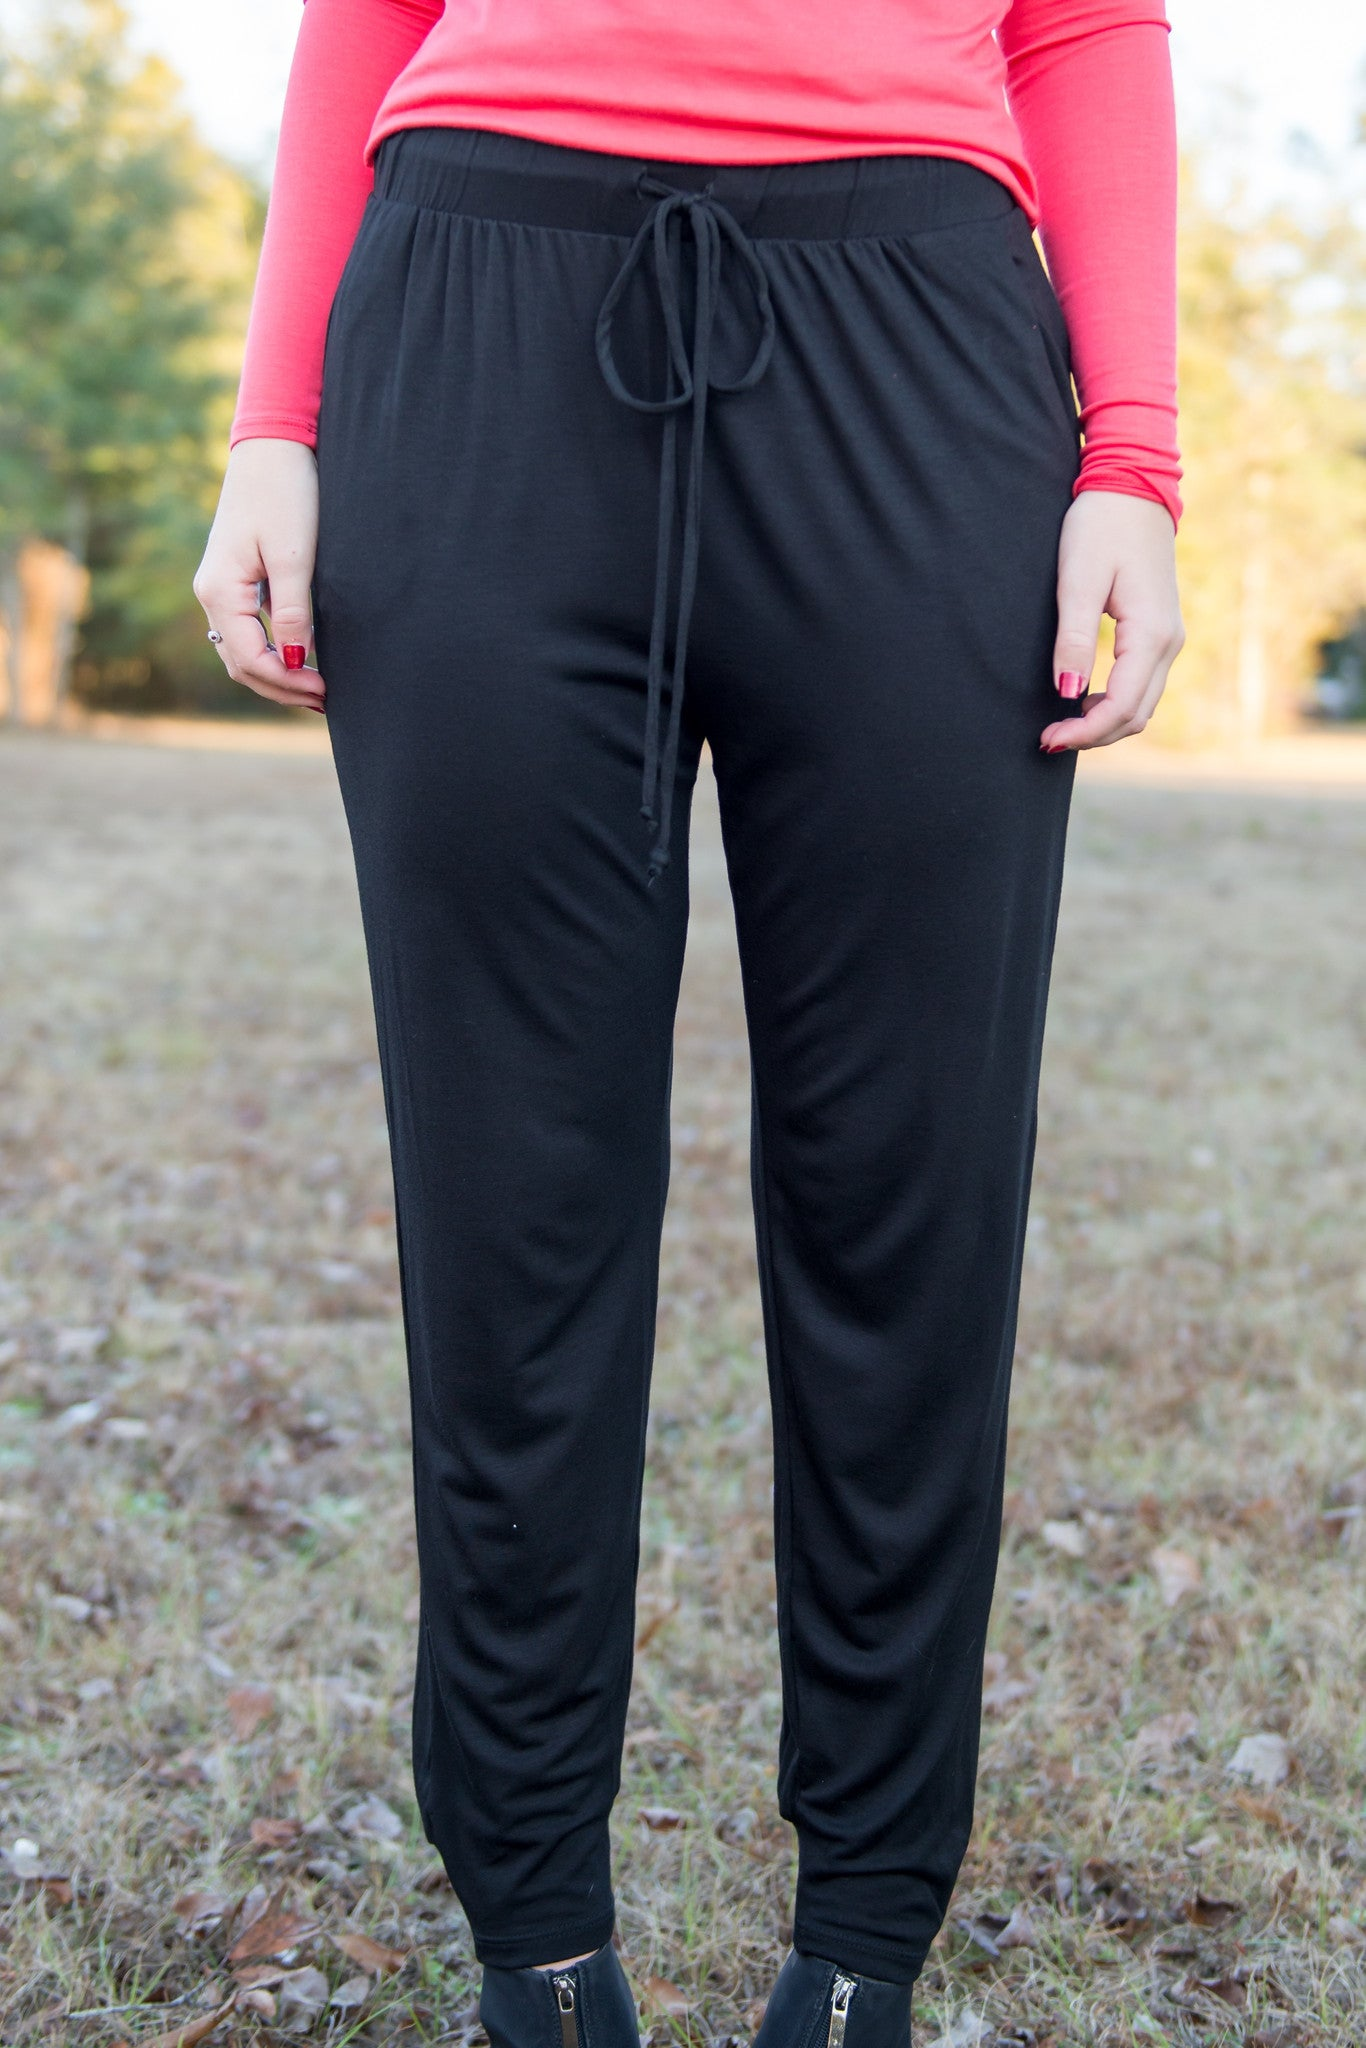 Weston: Kendra Pants, Black